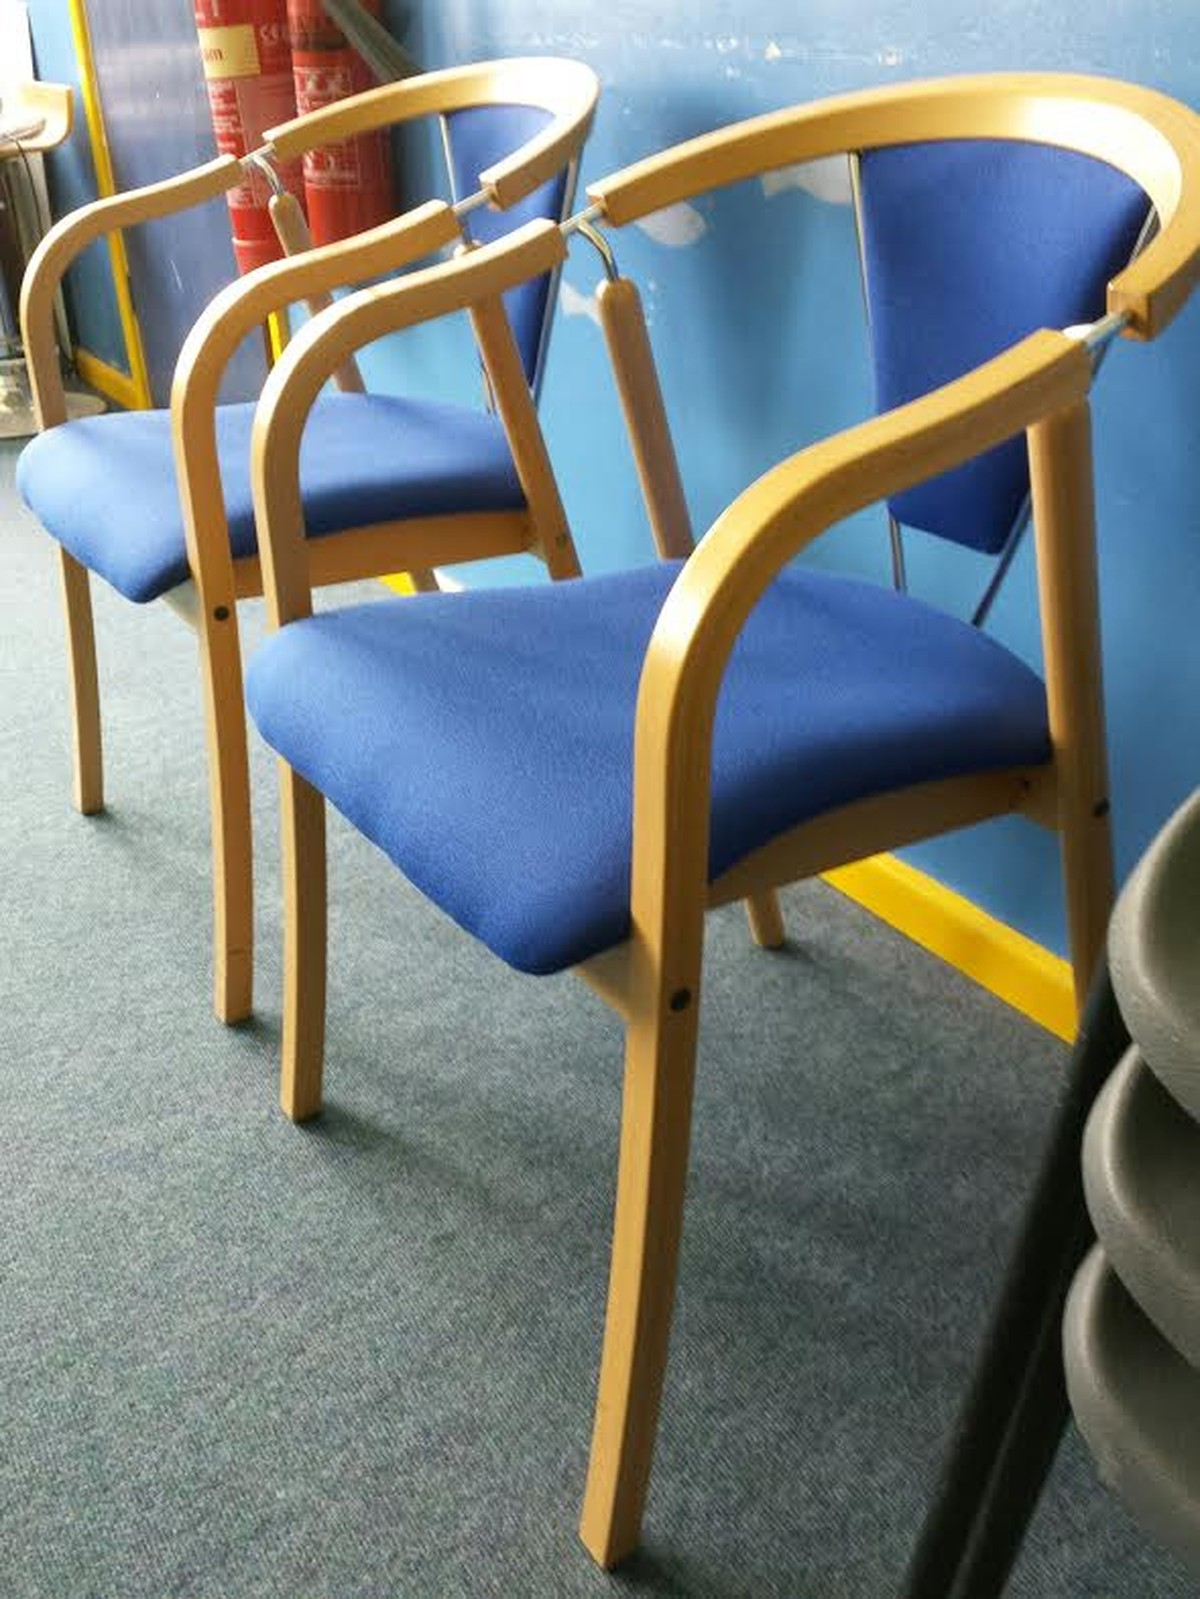 hotel chairs for sale wedding chair covers cheap secondhand furniture reception 2x wooden